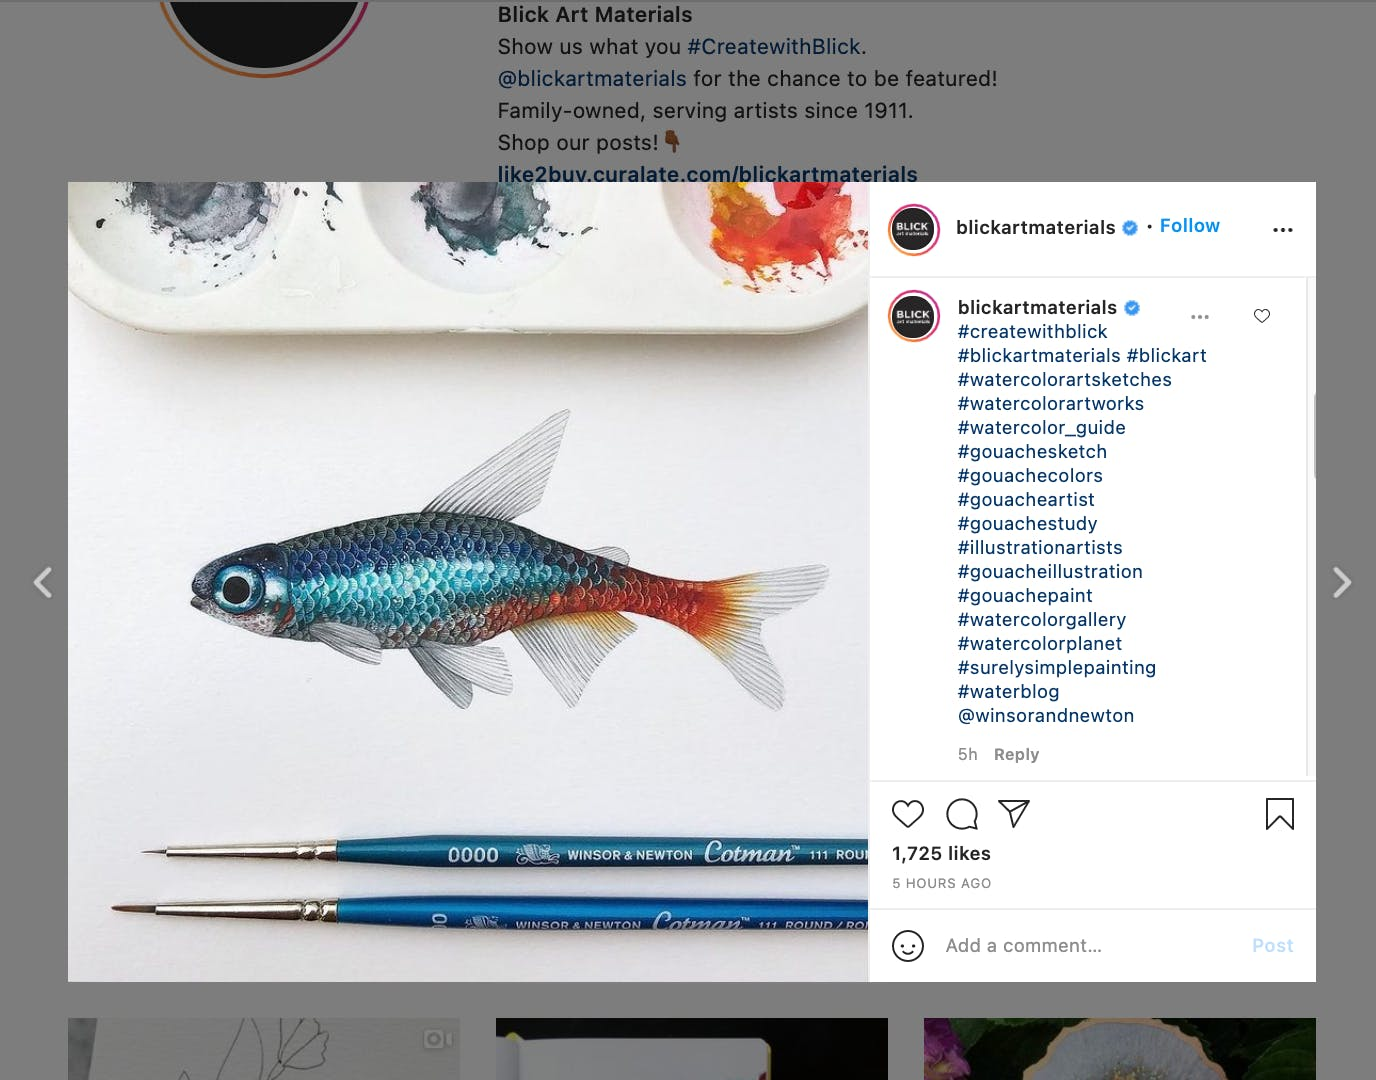 Example of a brand using more hashtag than generally advised. The hashtags are specific, industry related, and catered to niche interests